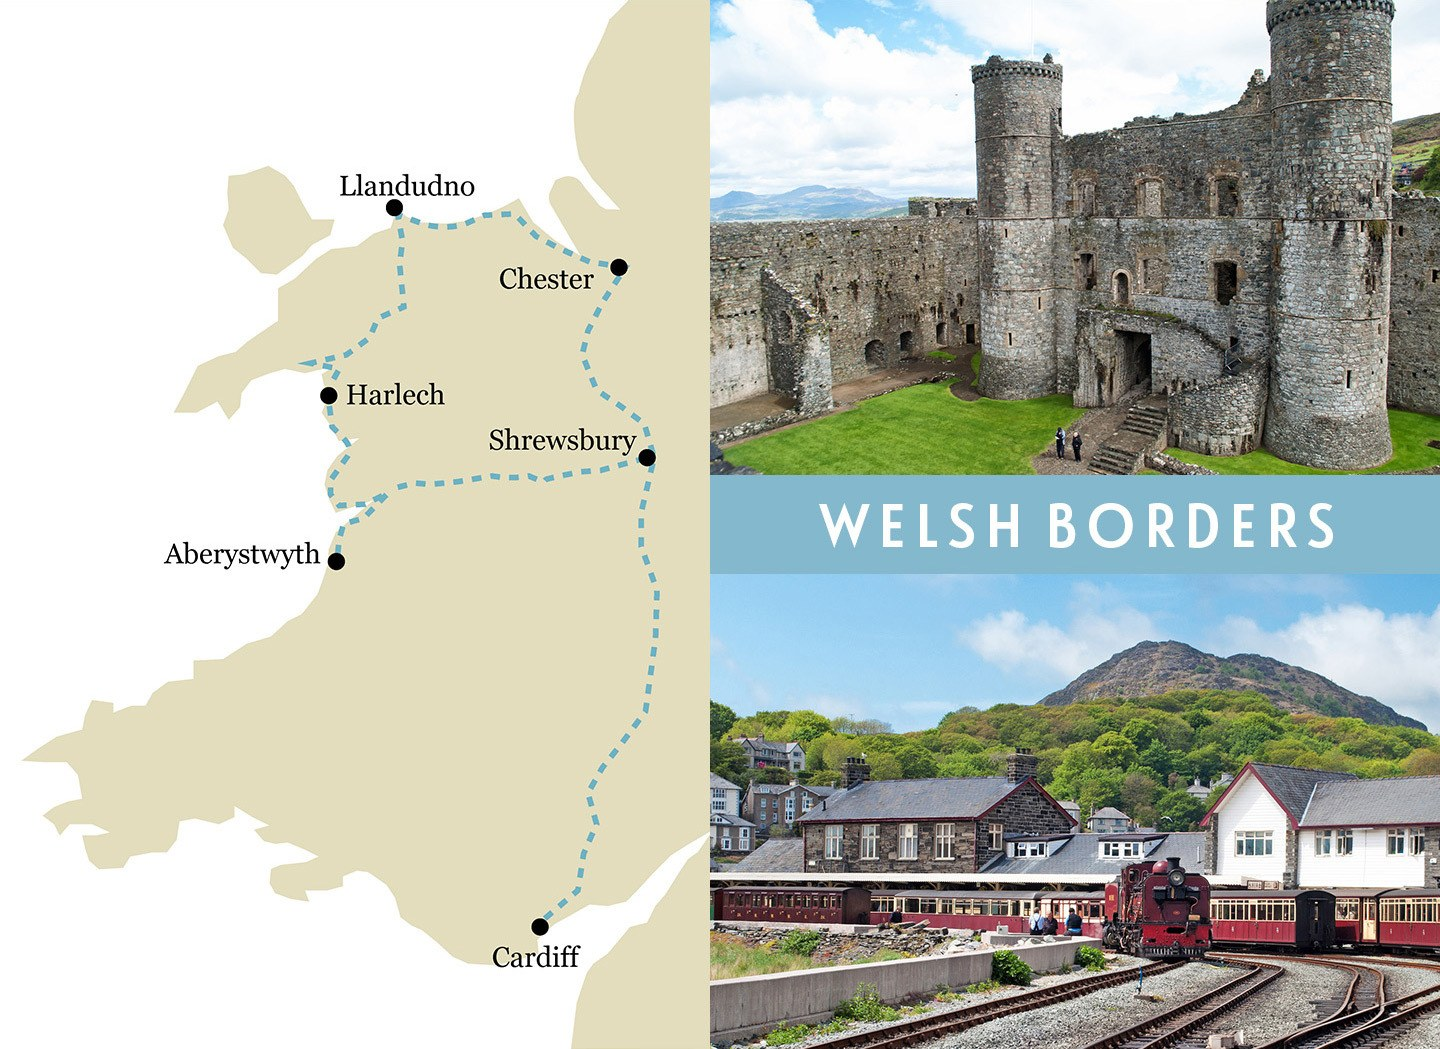 Britain by train: Wales one-week rail trip route